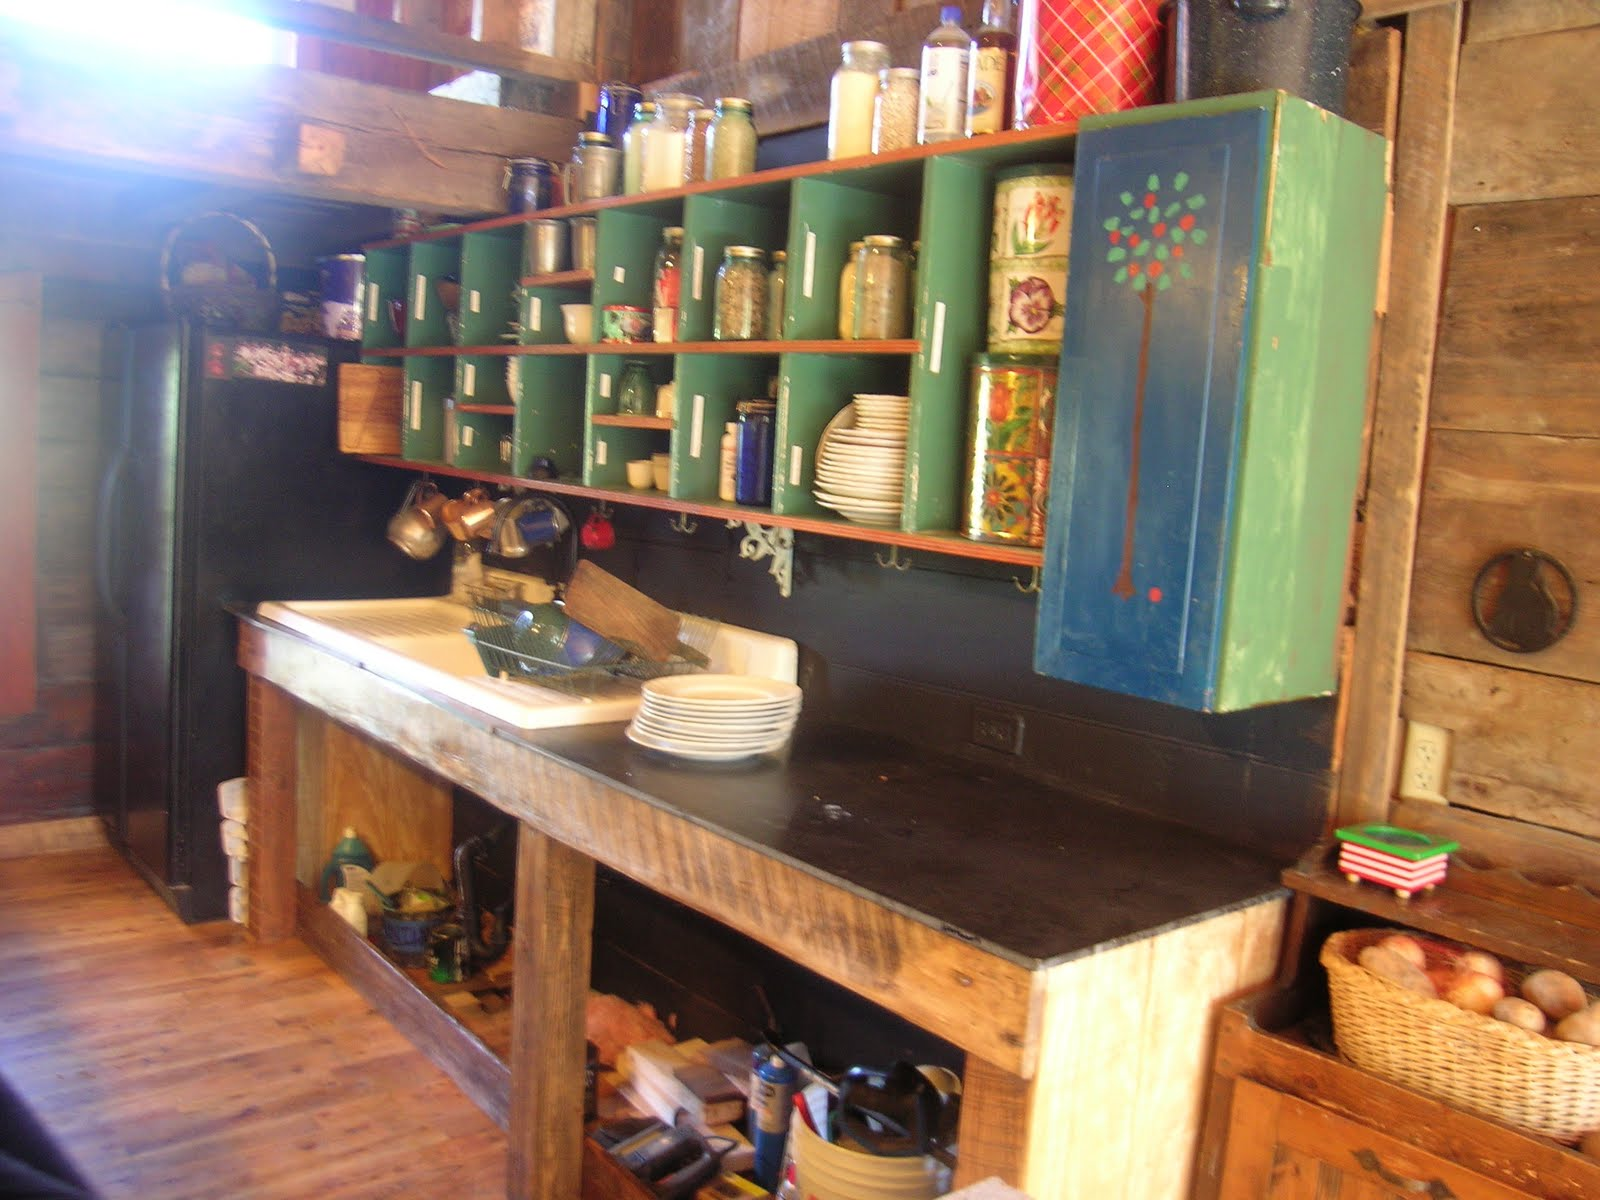 Open Kitchen Sink Aid Replacement Parts House Art Journal Homemade Cabinet